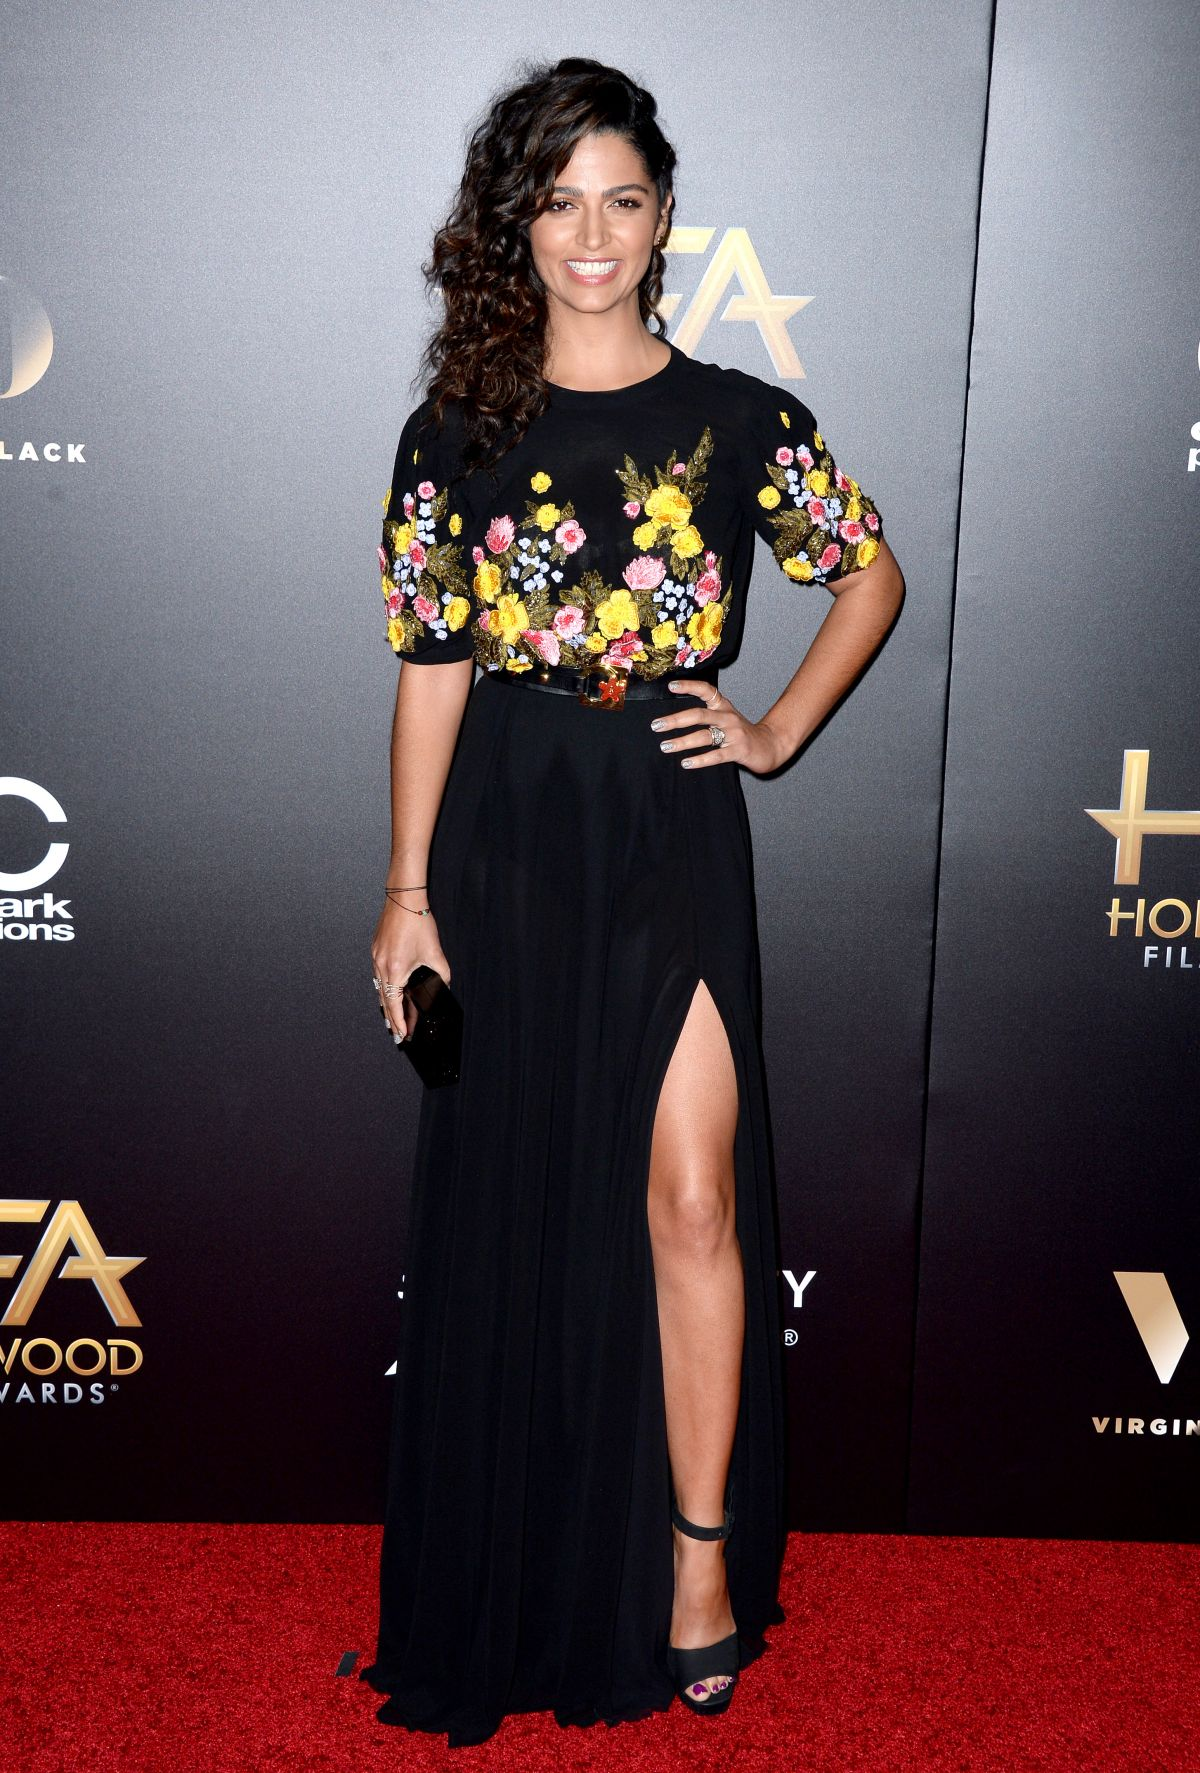 CAMILA ALVES at 20th Annual Hollywood Film Awards in Beverly Hills 11/06/2016